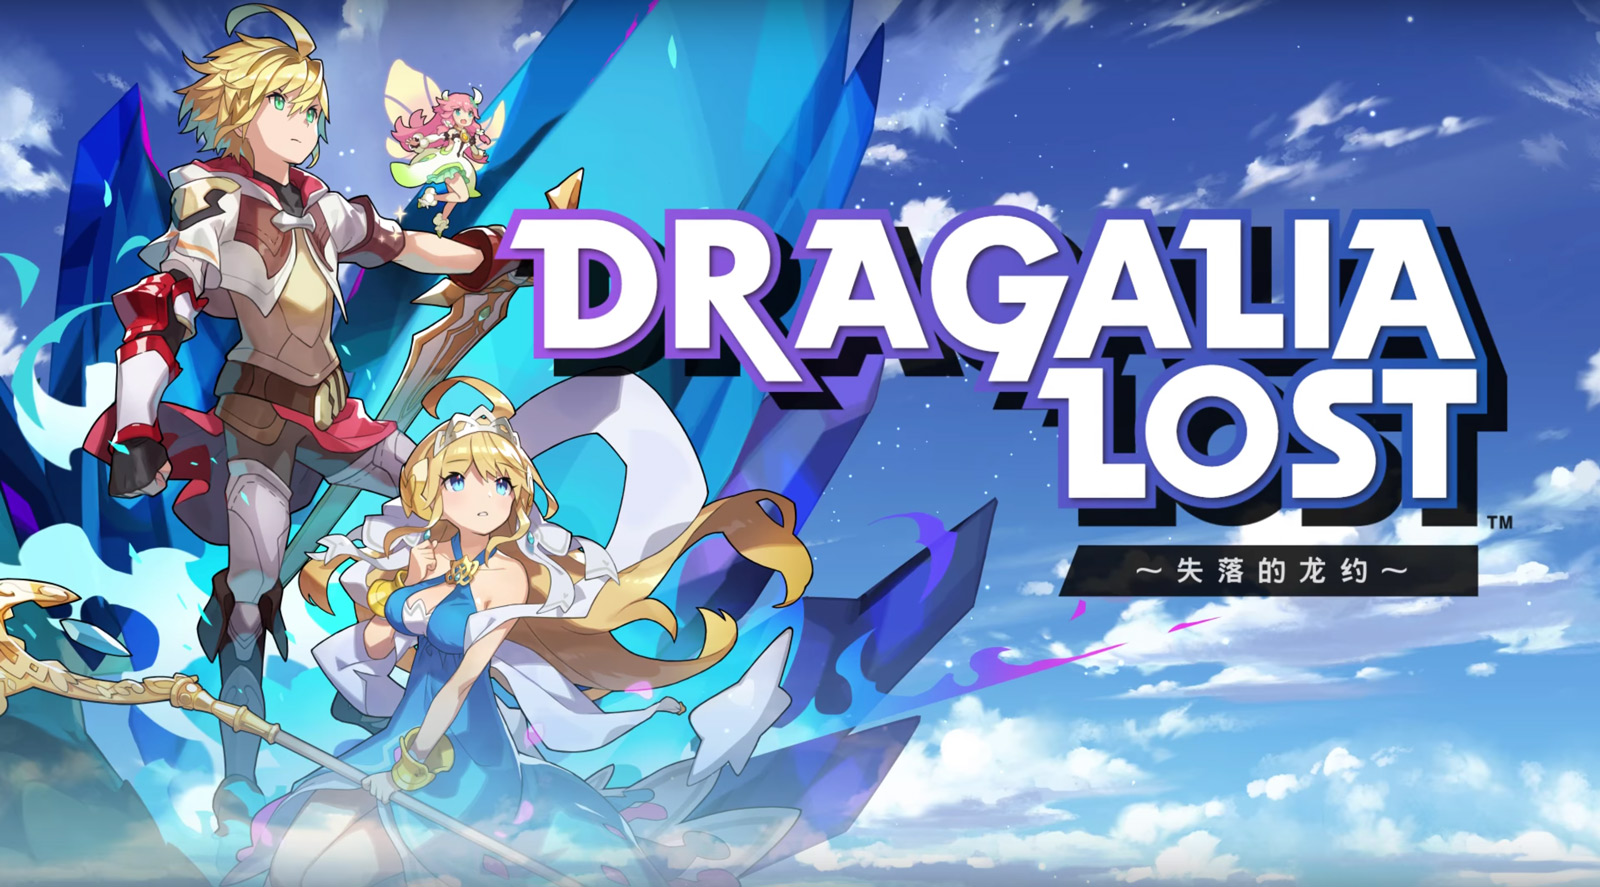 Nintendo partners up for a money-printing mobile RPG